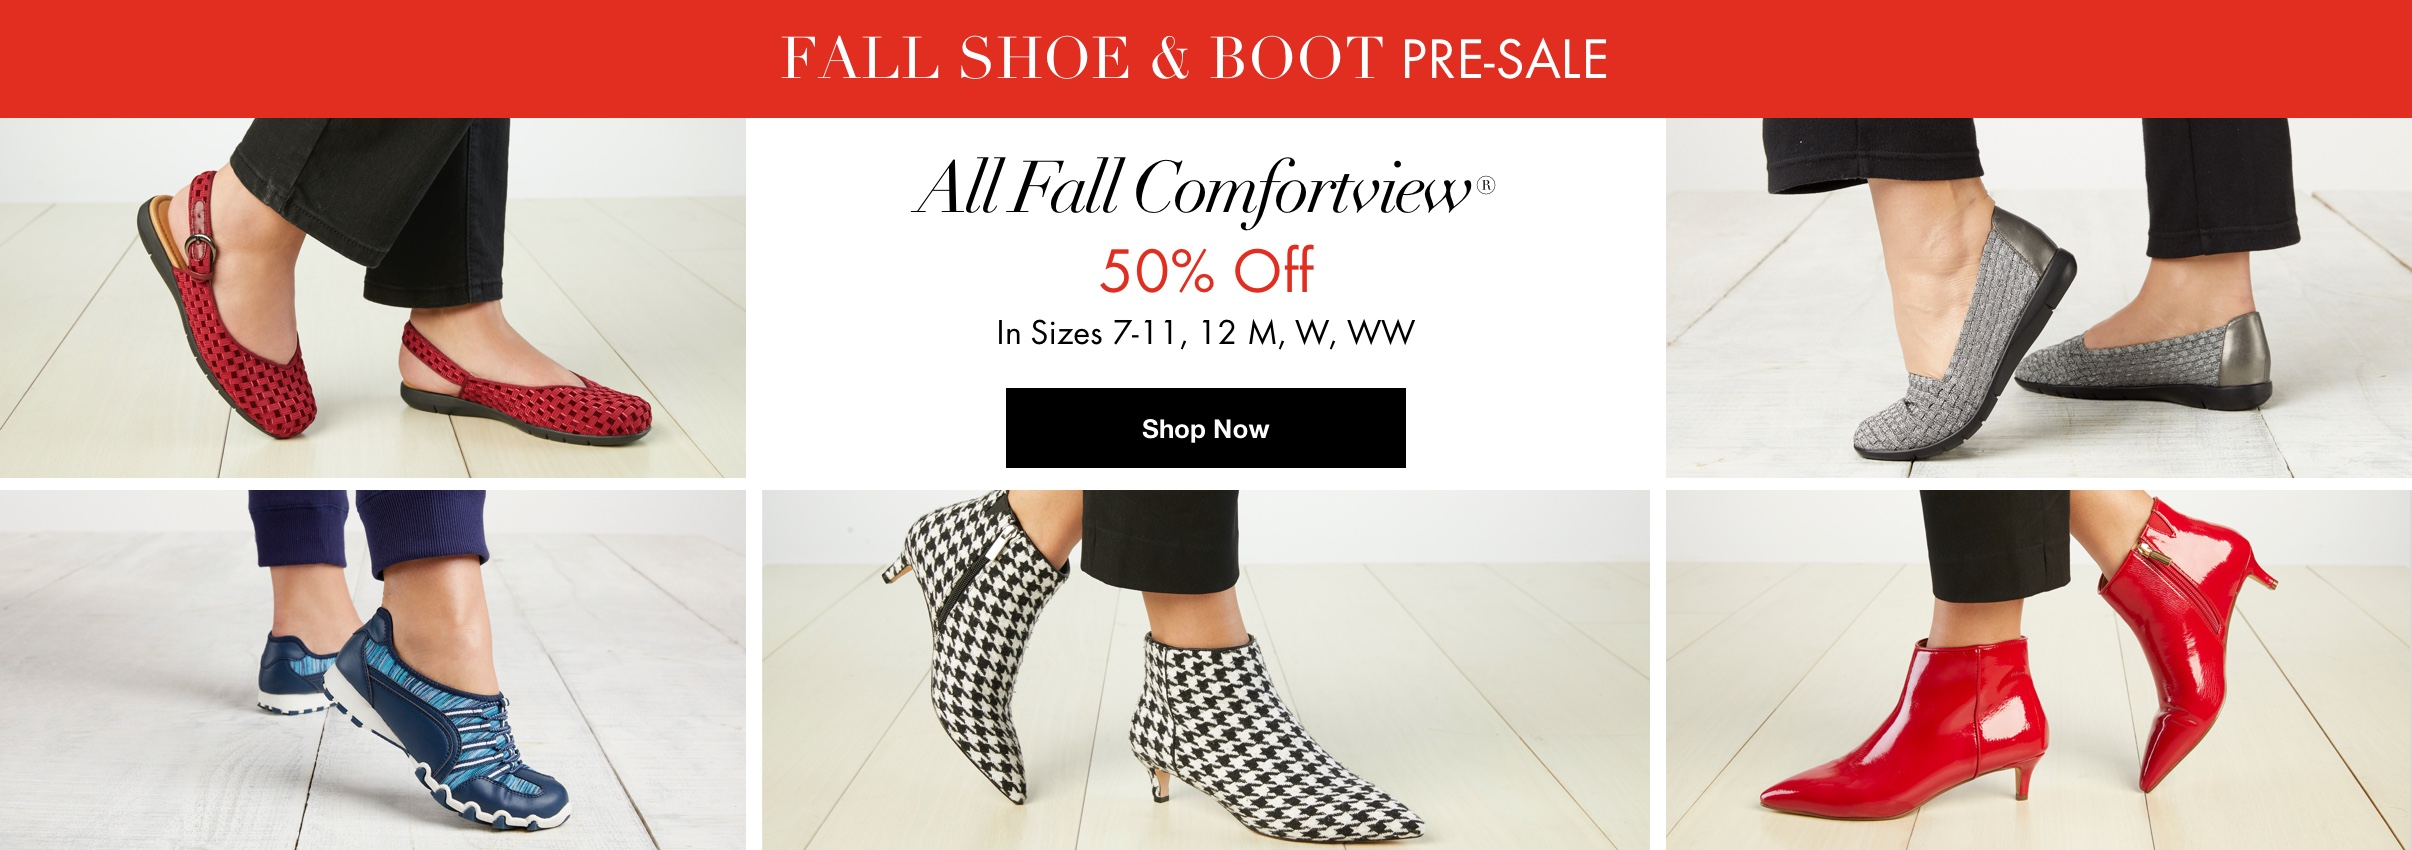 Fall Shoe & Boot Pre-Sale - All Fall Comfortview® 50% Off In Sizes 7-11, 12 M, W, WW - Shop Now